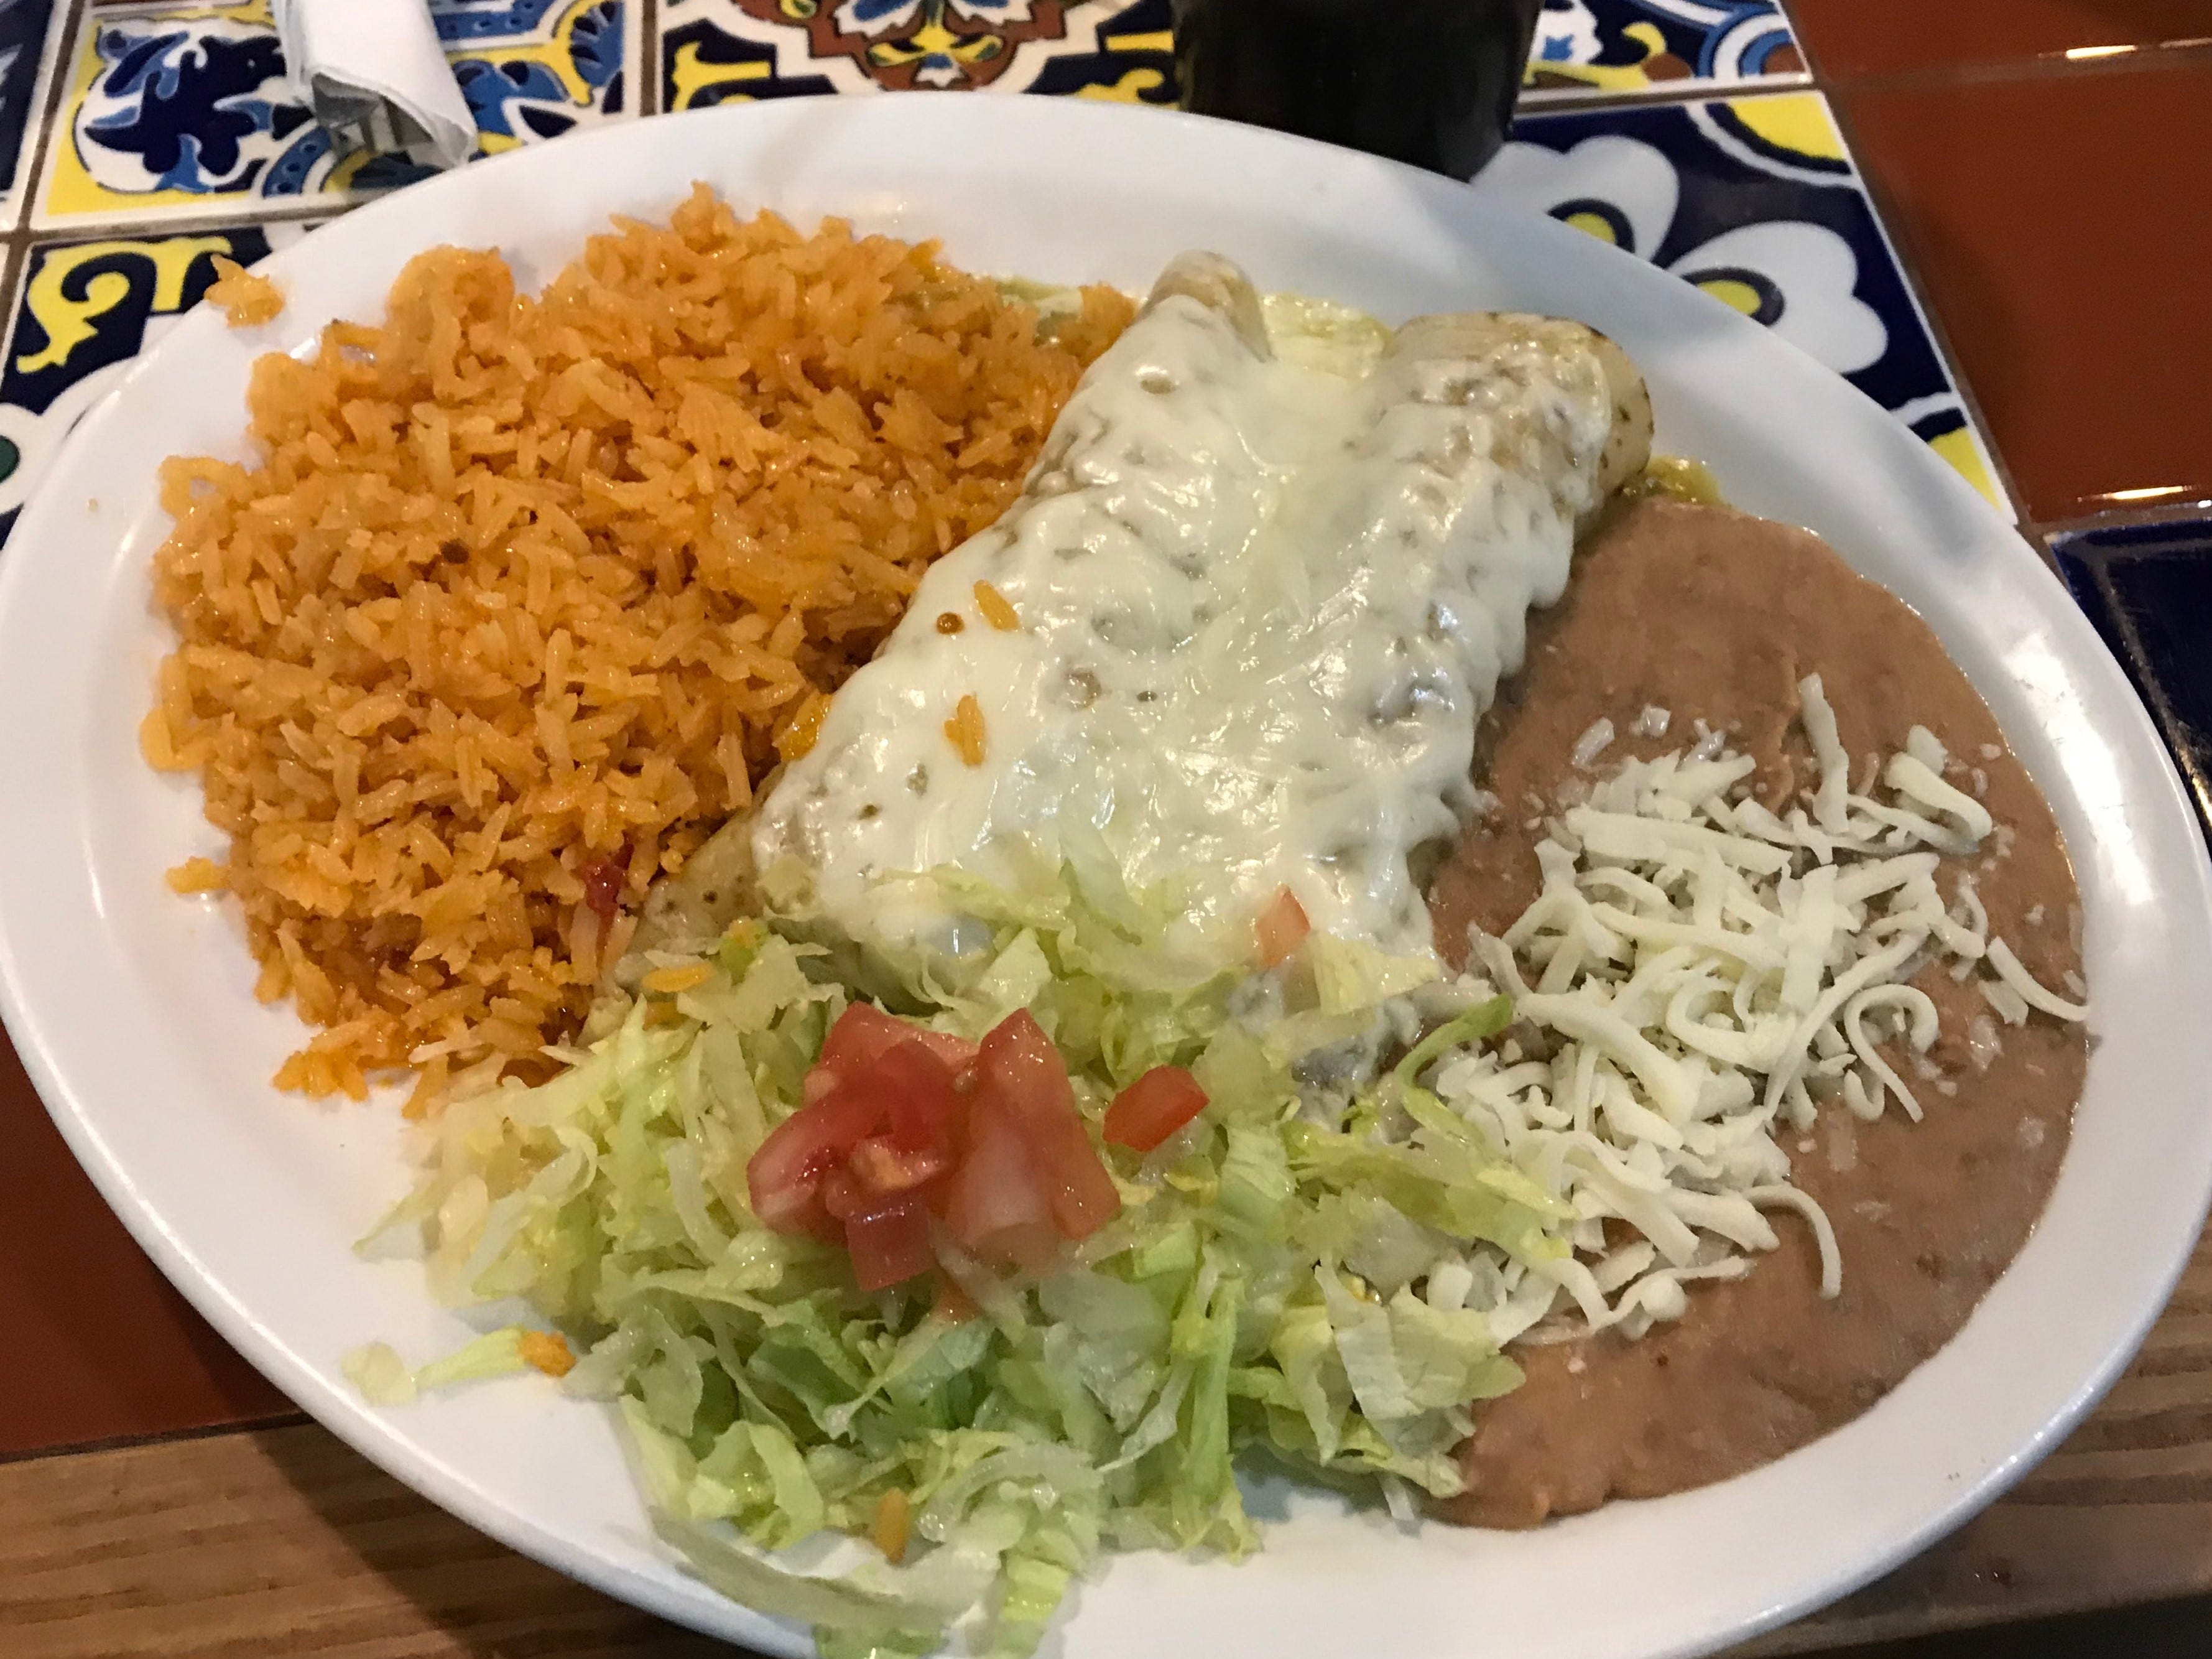 Gary Klein's enchiladas during lunch on Tuesday, Dec. 4 at 2 Amigos.